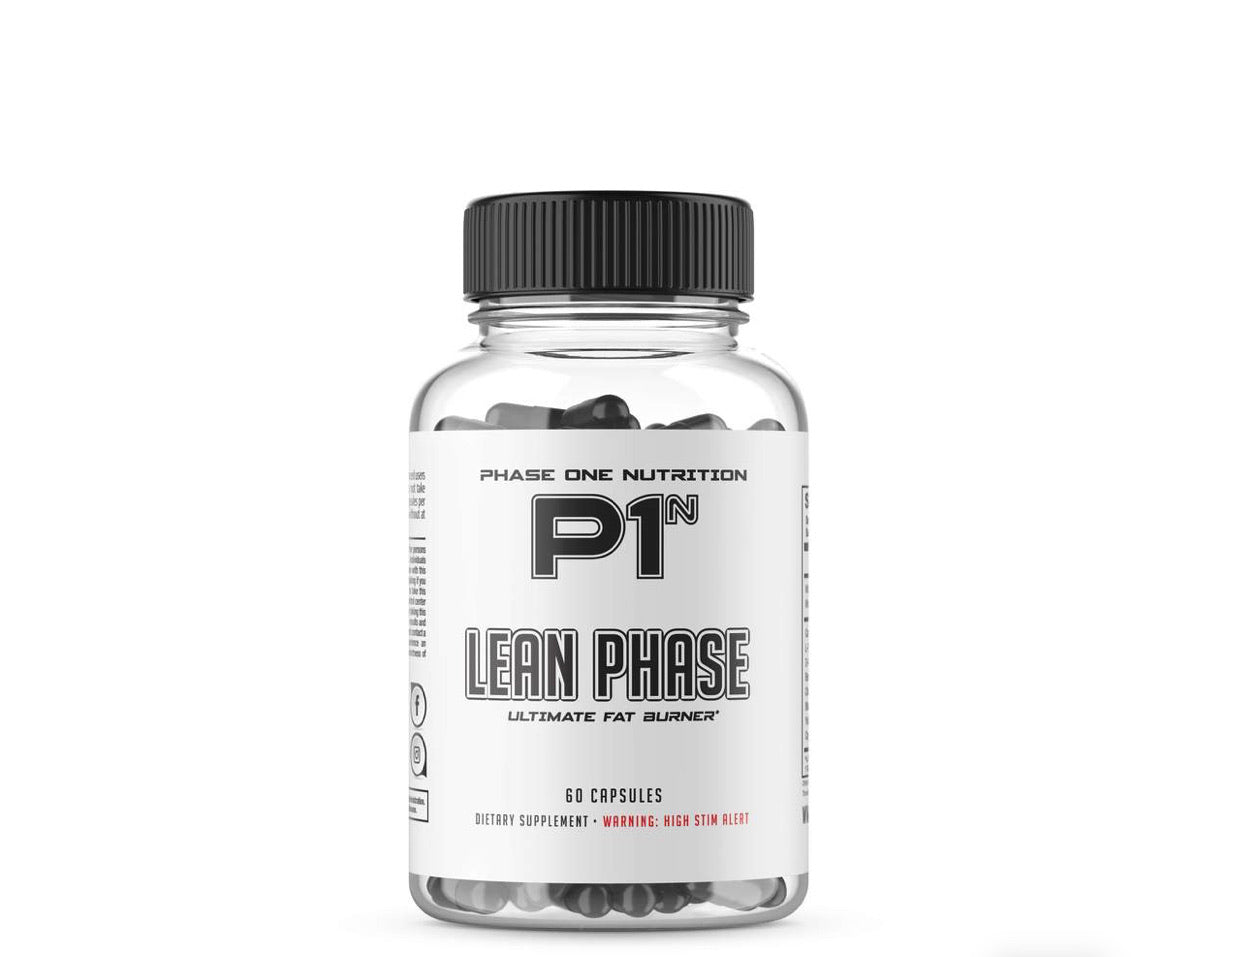 Lean Phase FatBurner - Phase One Nutrition (In store purchase only)